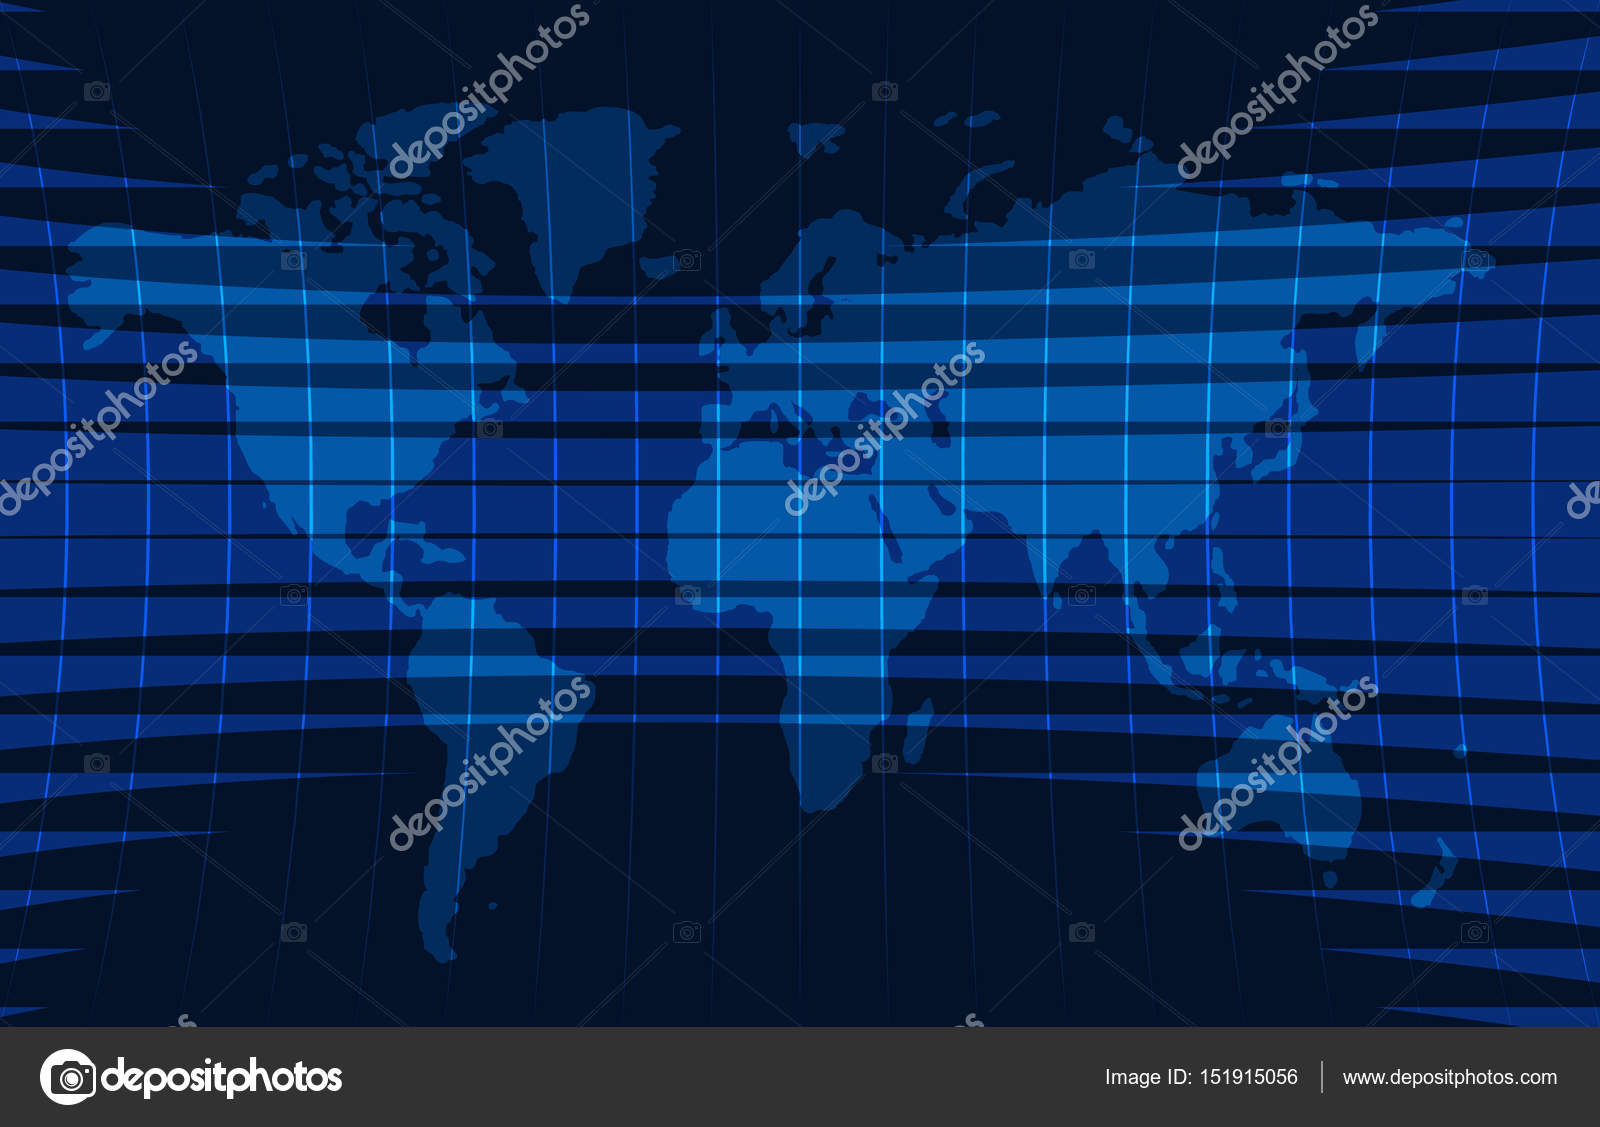 News background breaking newsvector infographic with news theme news background breaking newsvector infographic with news theme map of the world gumiabroncs Images